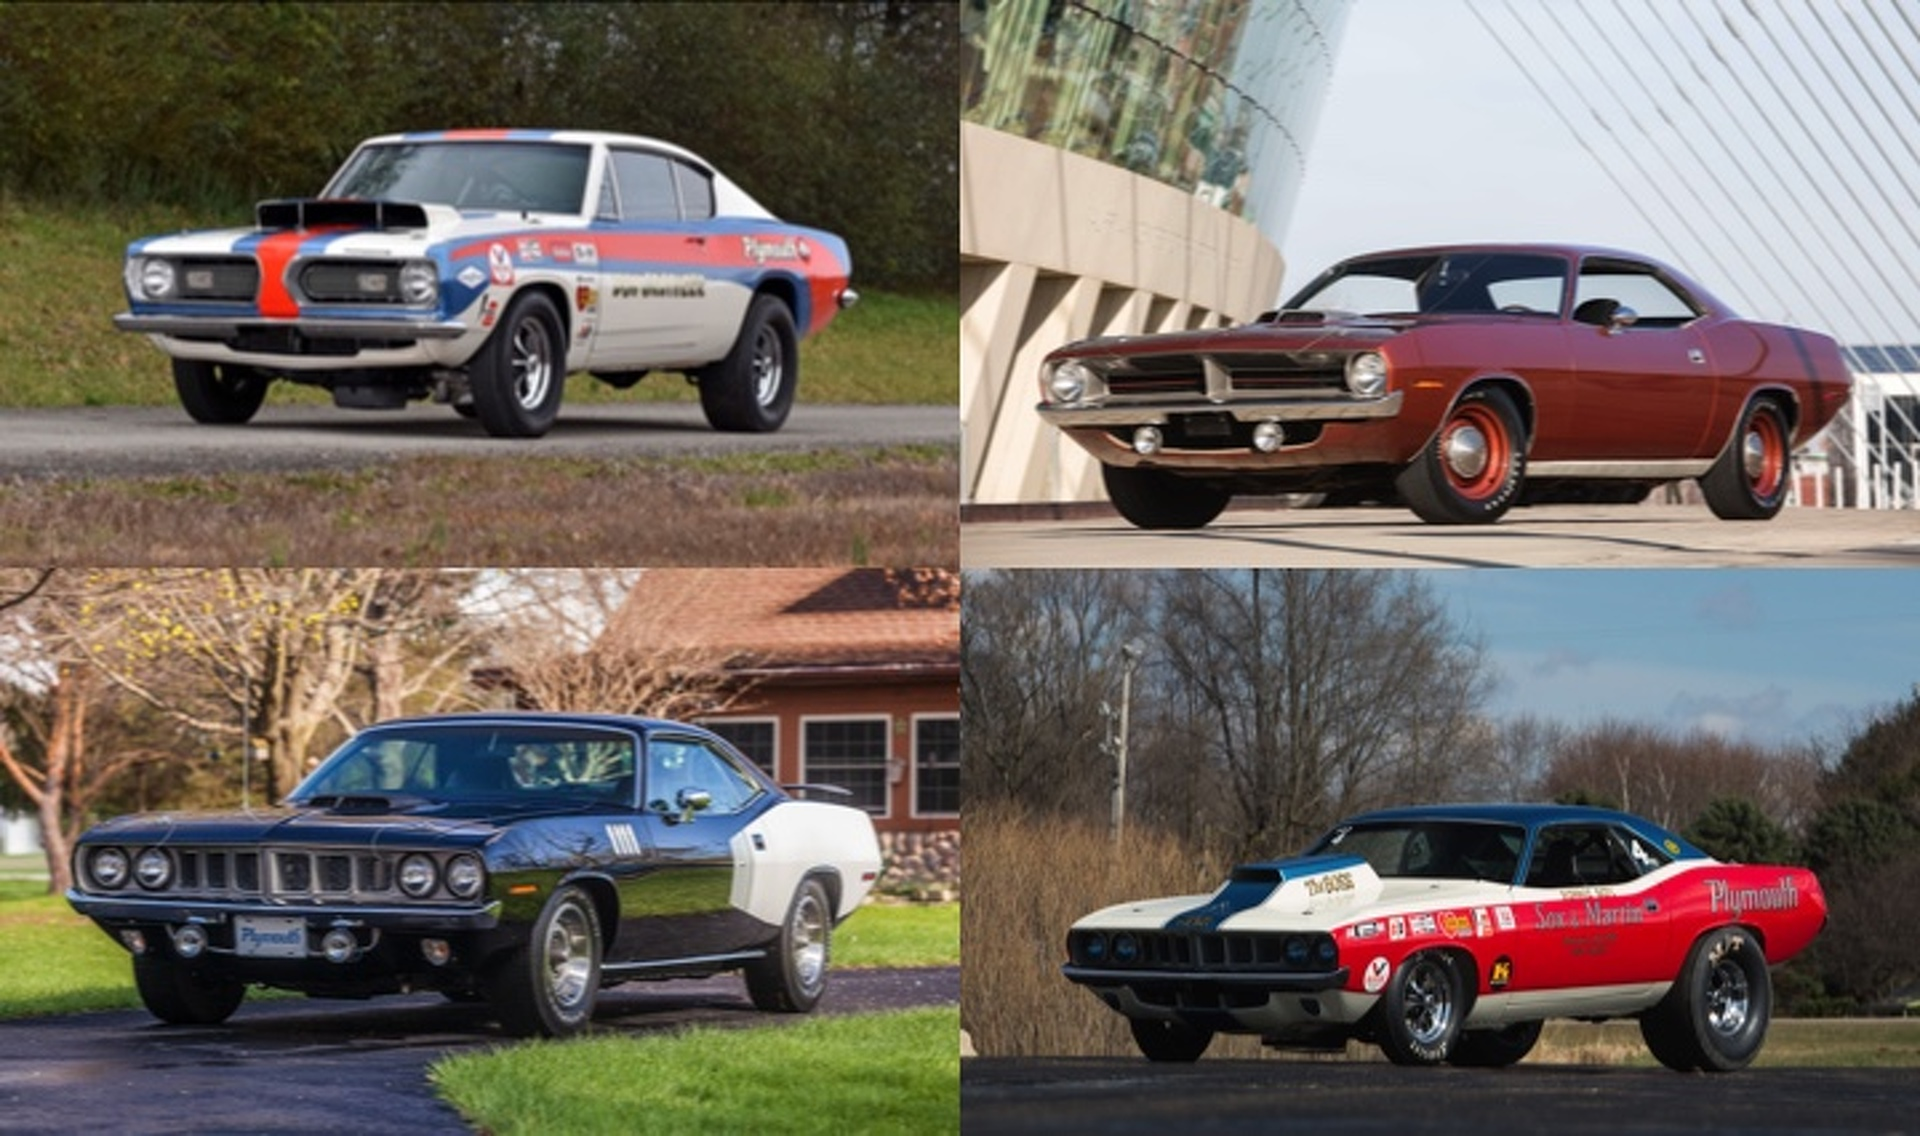 4 Historic Hemi Cudas Are Headed to Auction